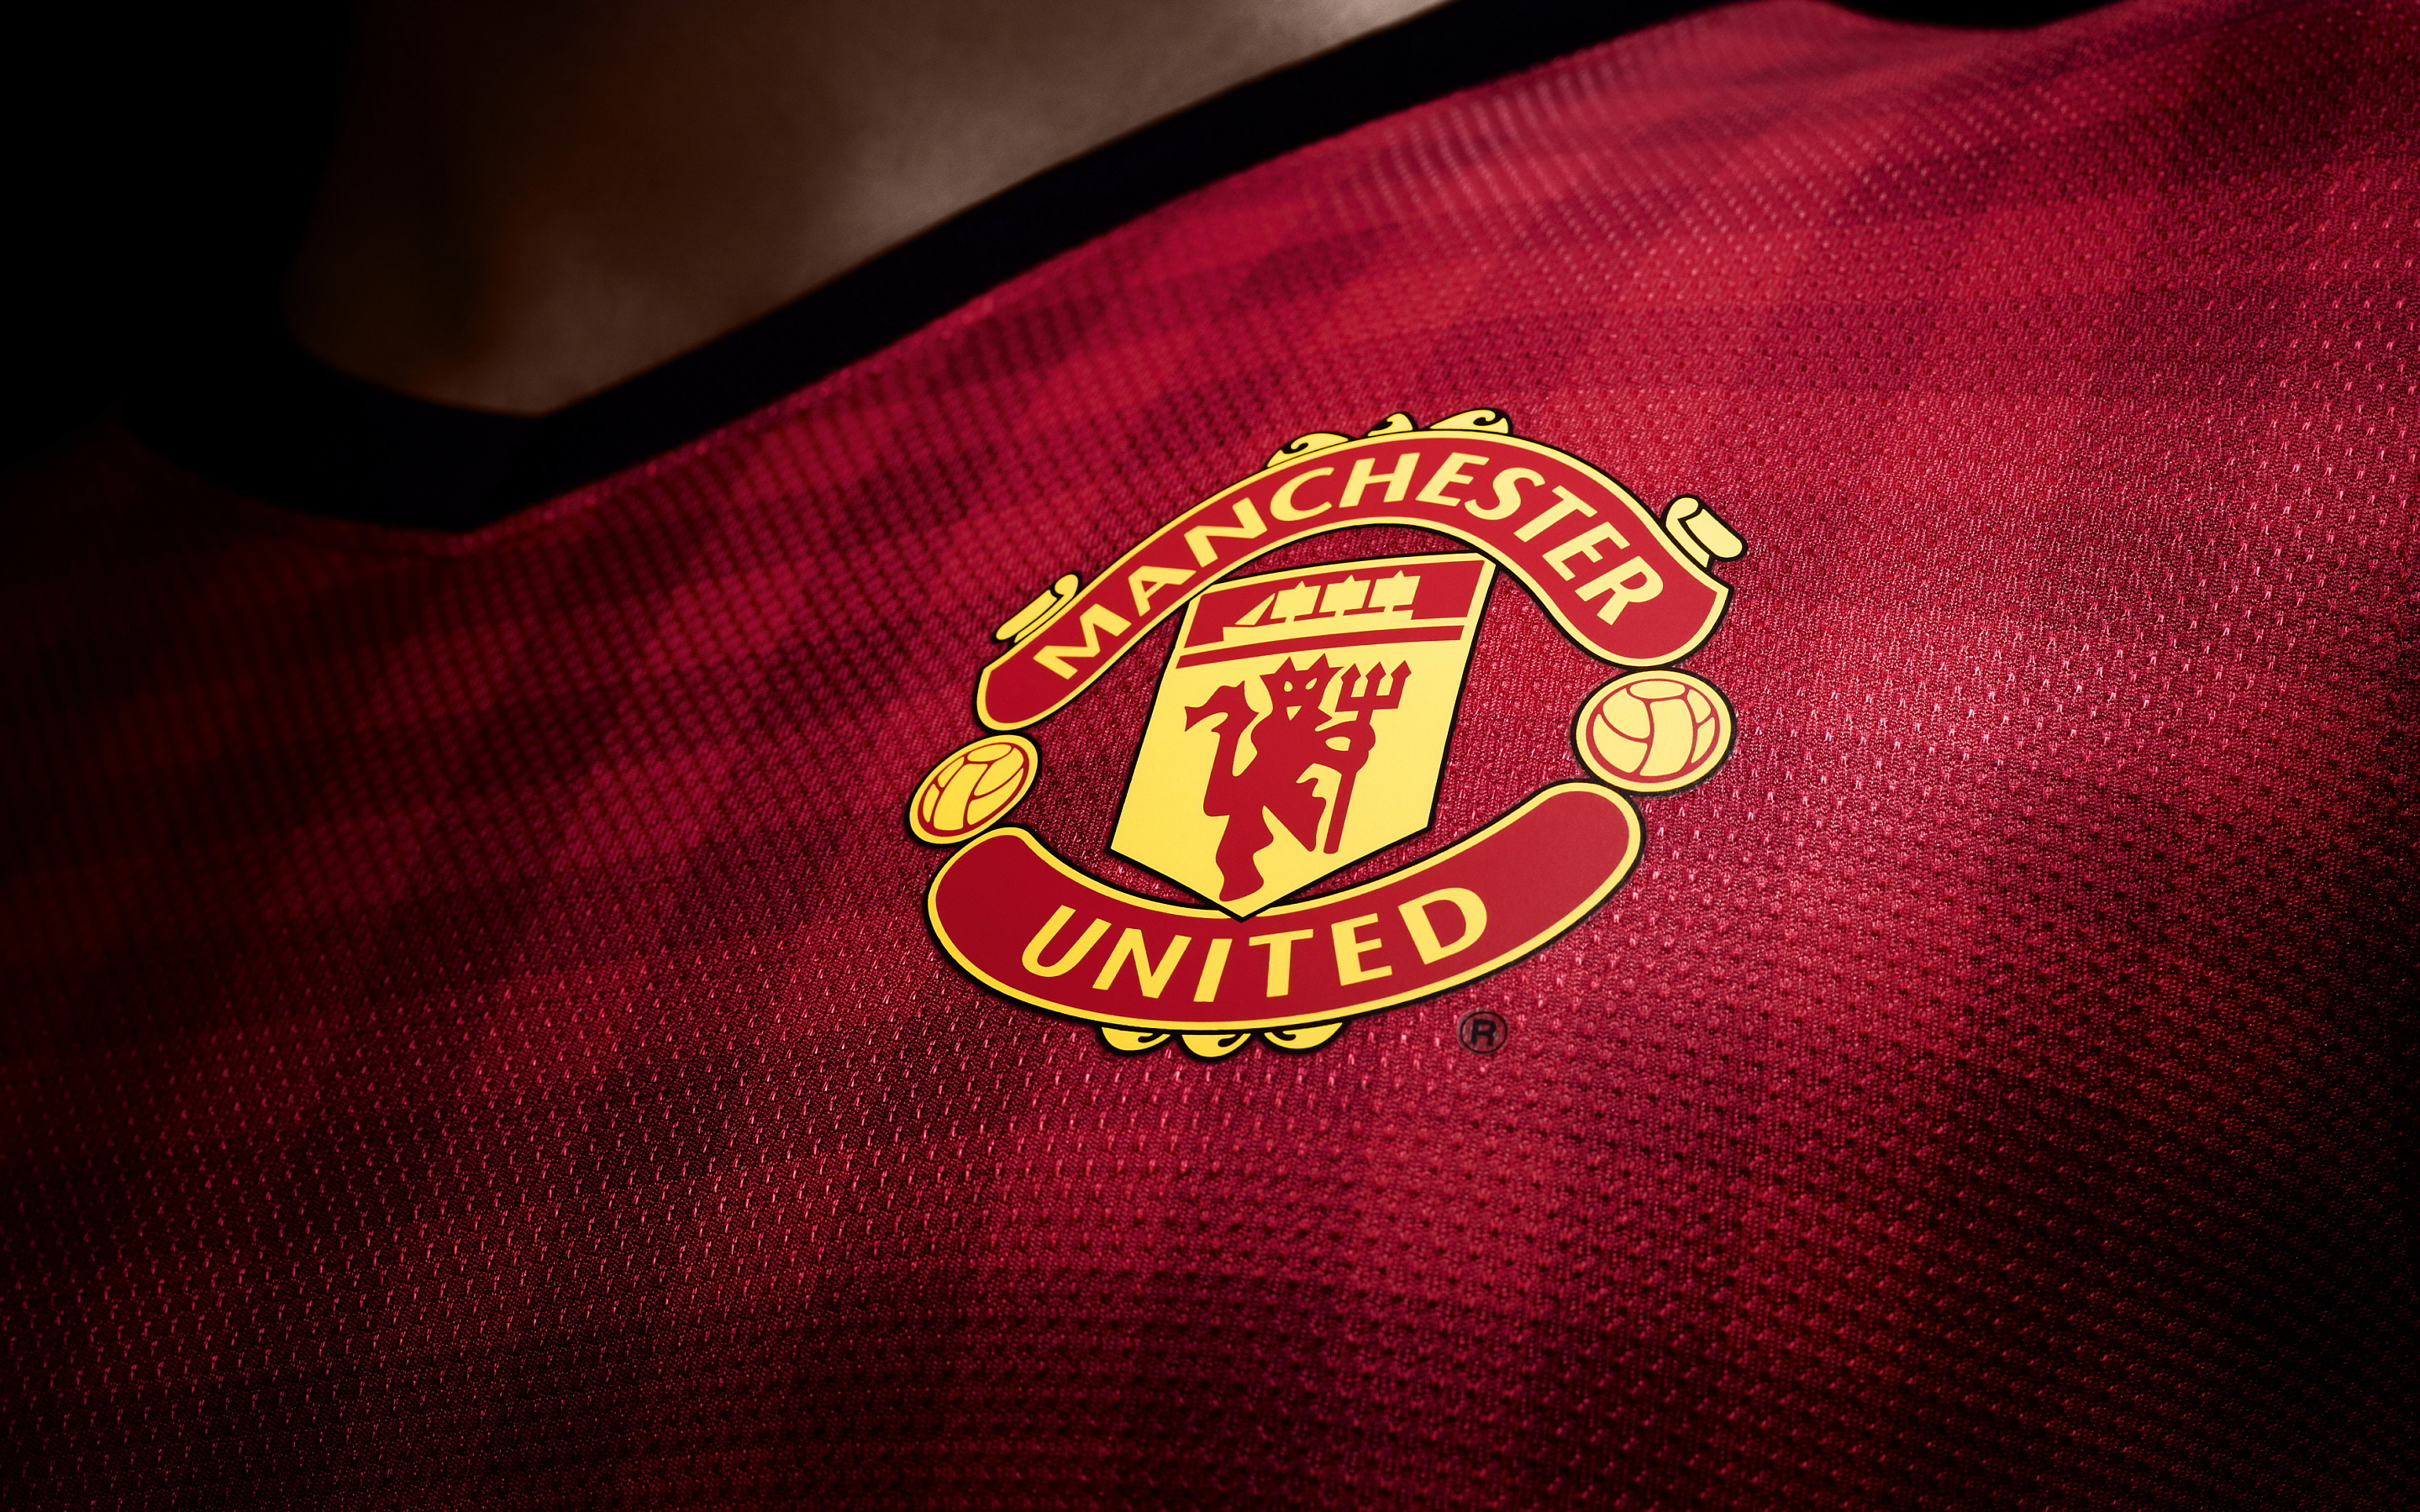 manchester united logo Manchester United Wallpaper HD 2013 #32 292